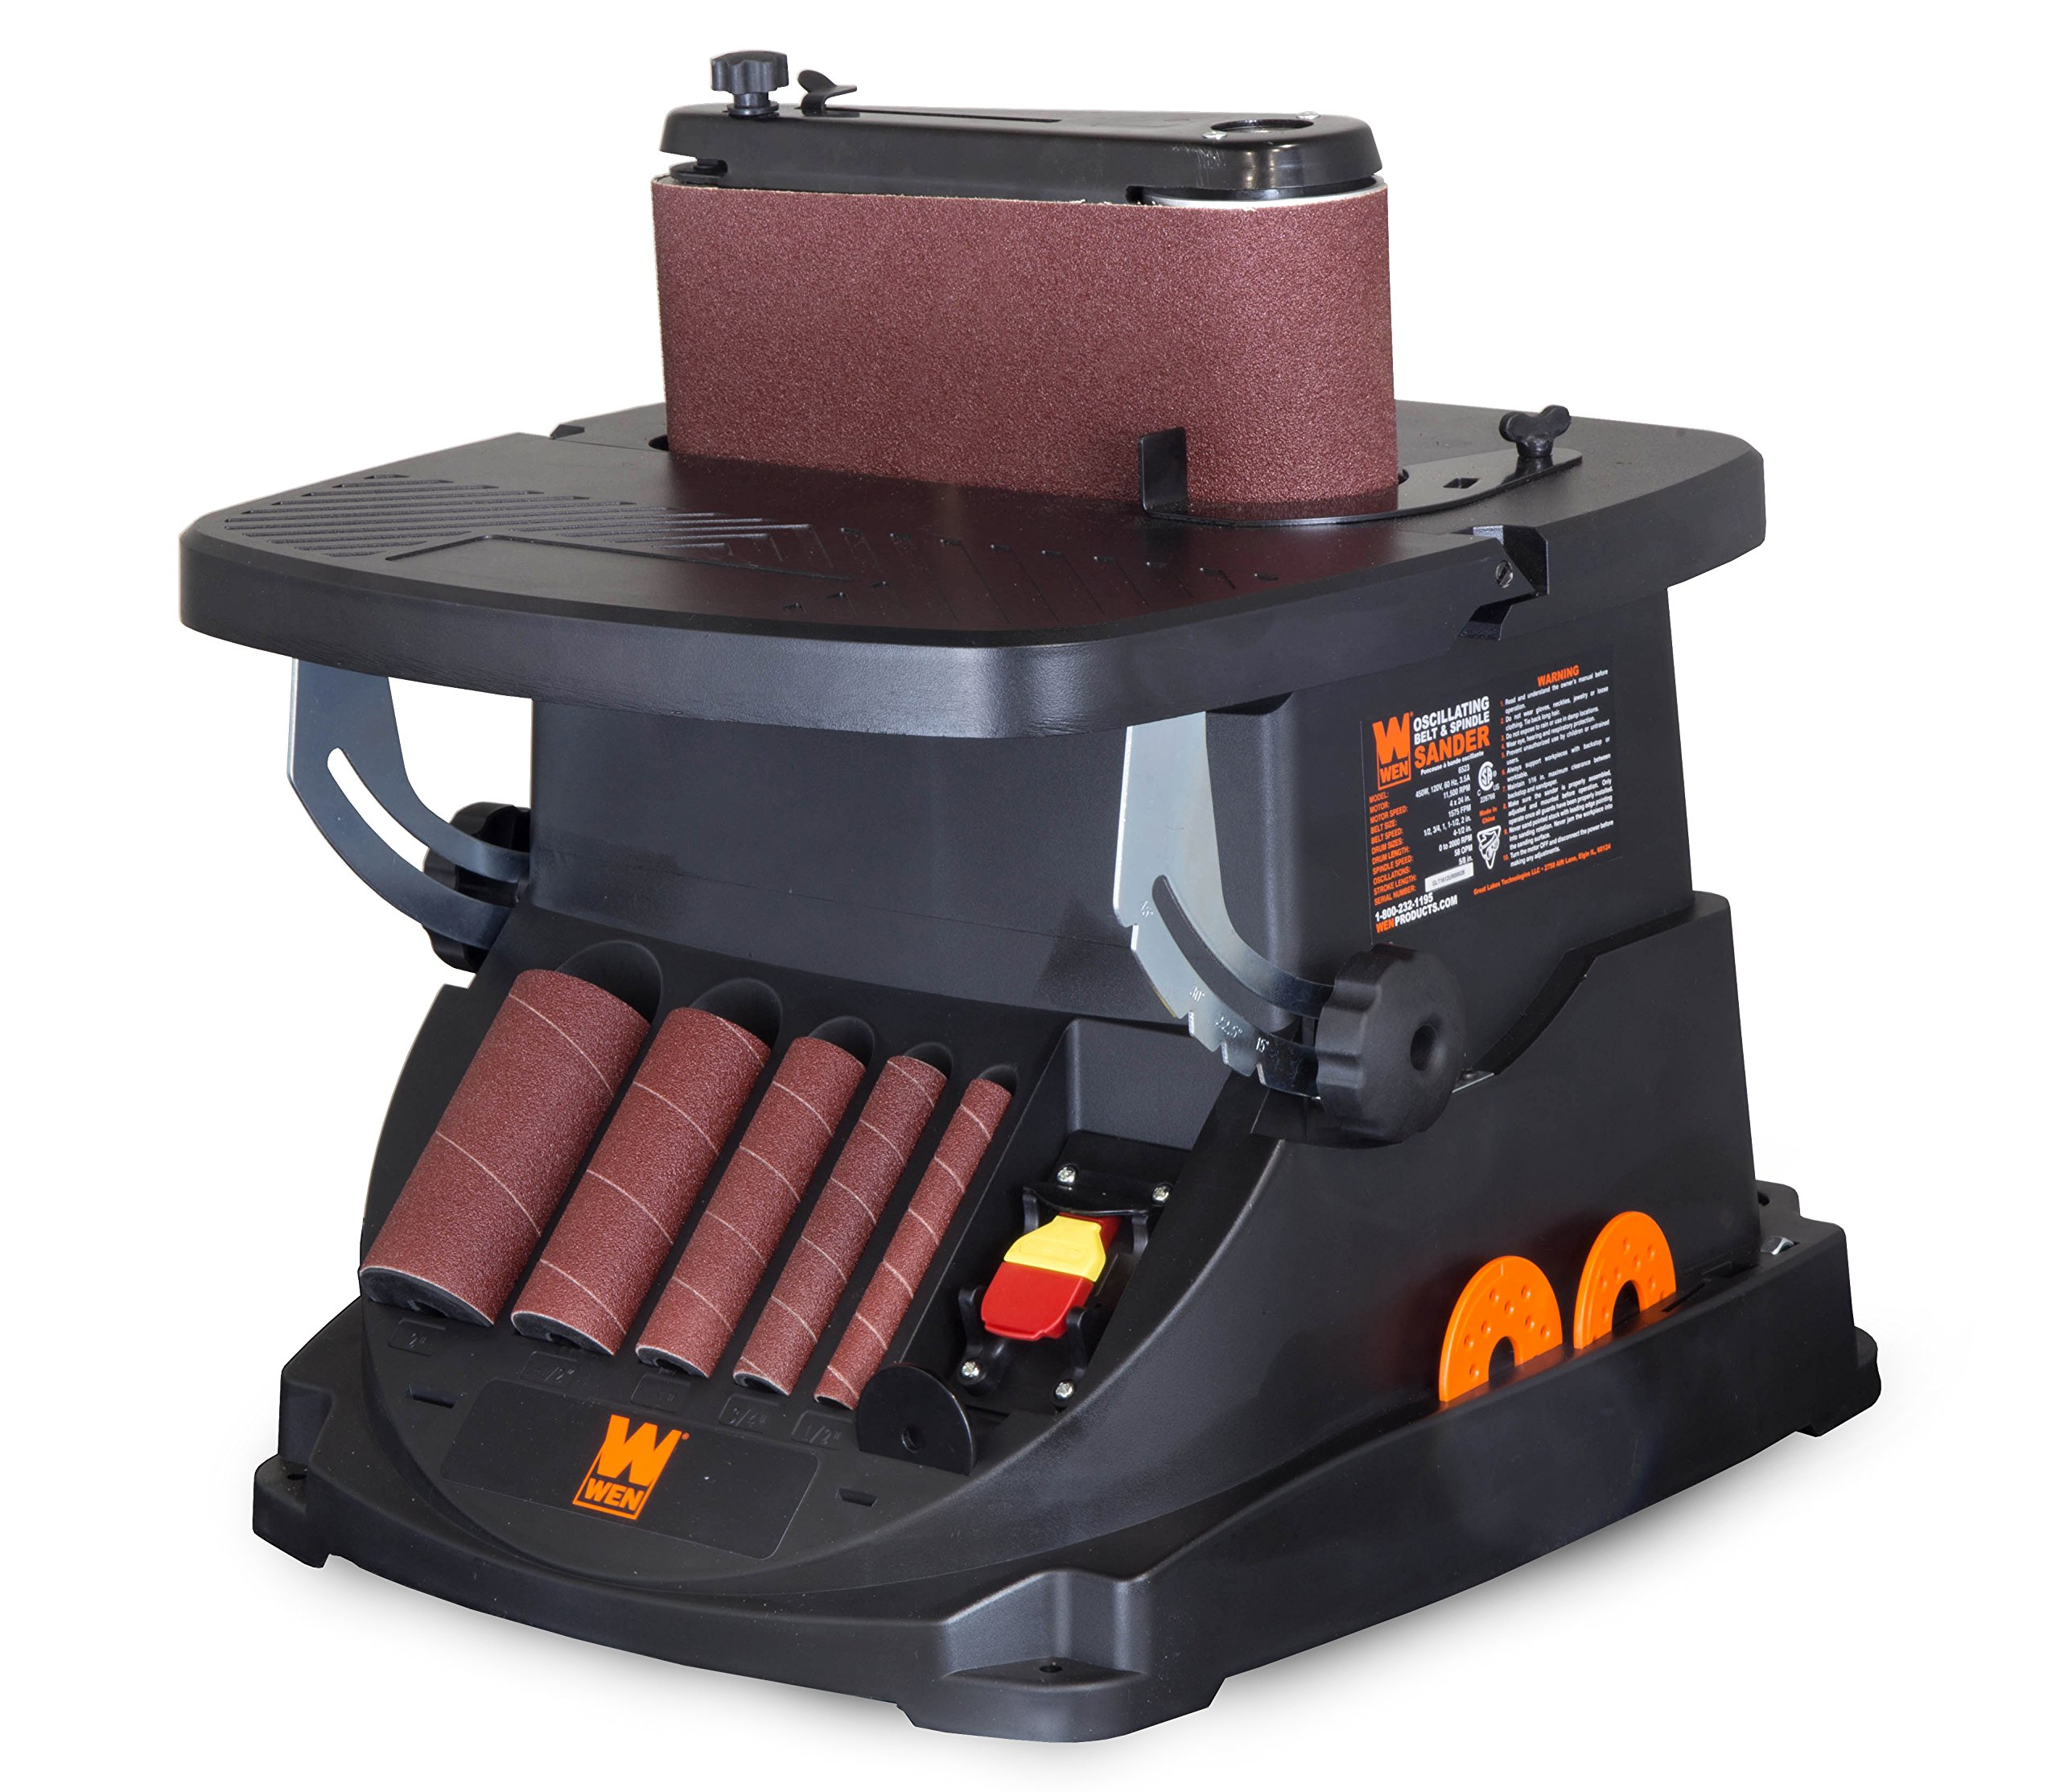 WEN 6523 Oscillating Belt & Spindle Sander